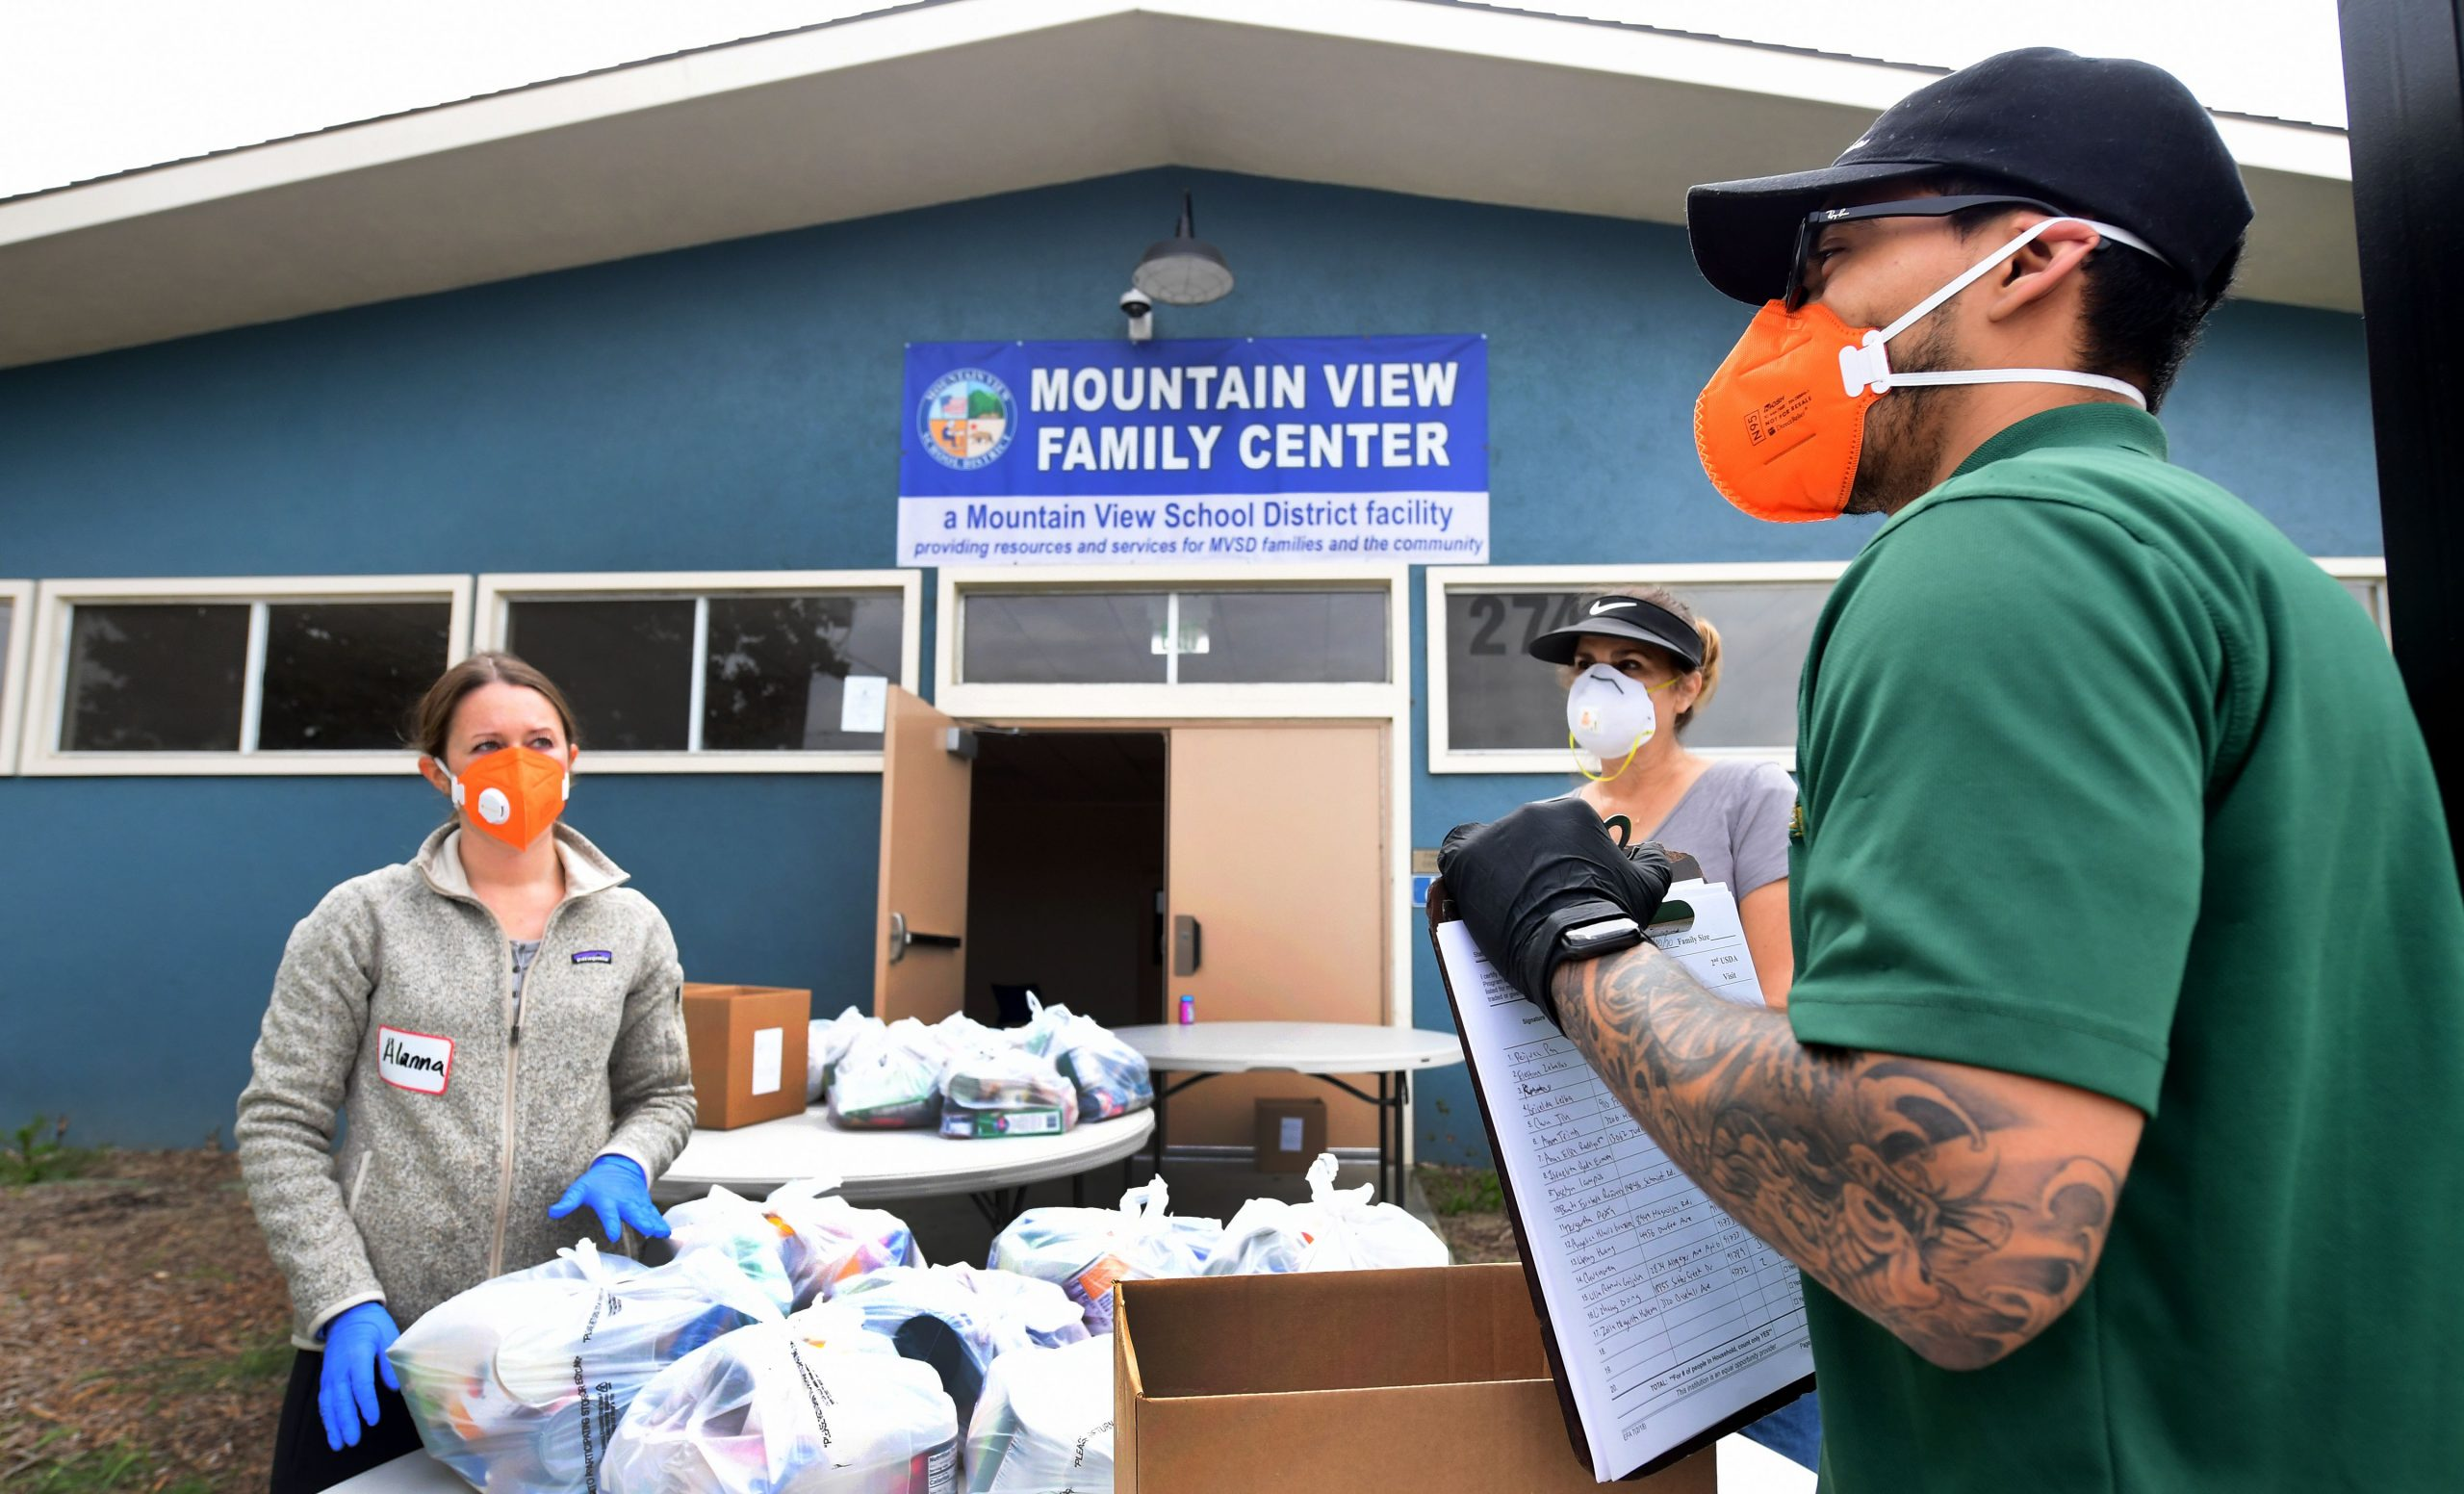 Volunteers in masks and gloves stand outside a food bank opened in response to the coronavirus pandemic on April 20, 2020 in El Monte, California. (Photo by Frederic J. BROWN / AFP)